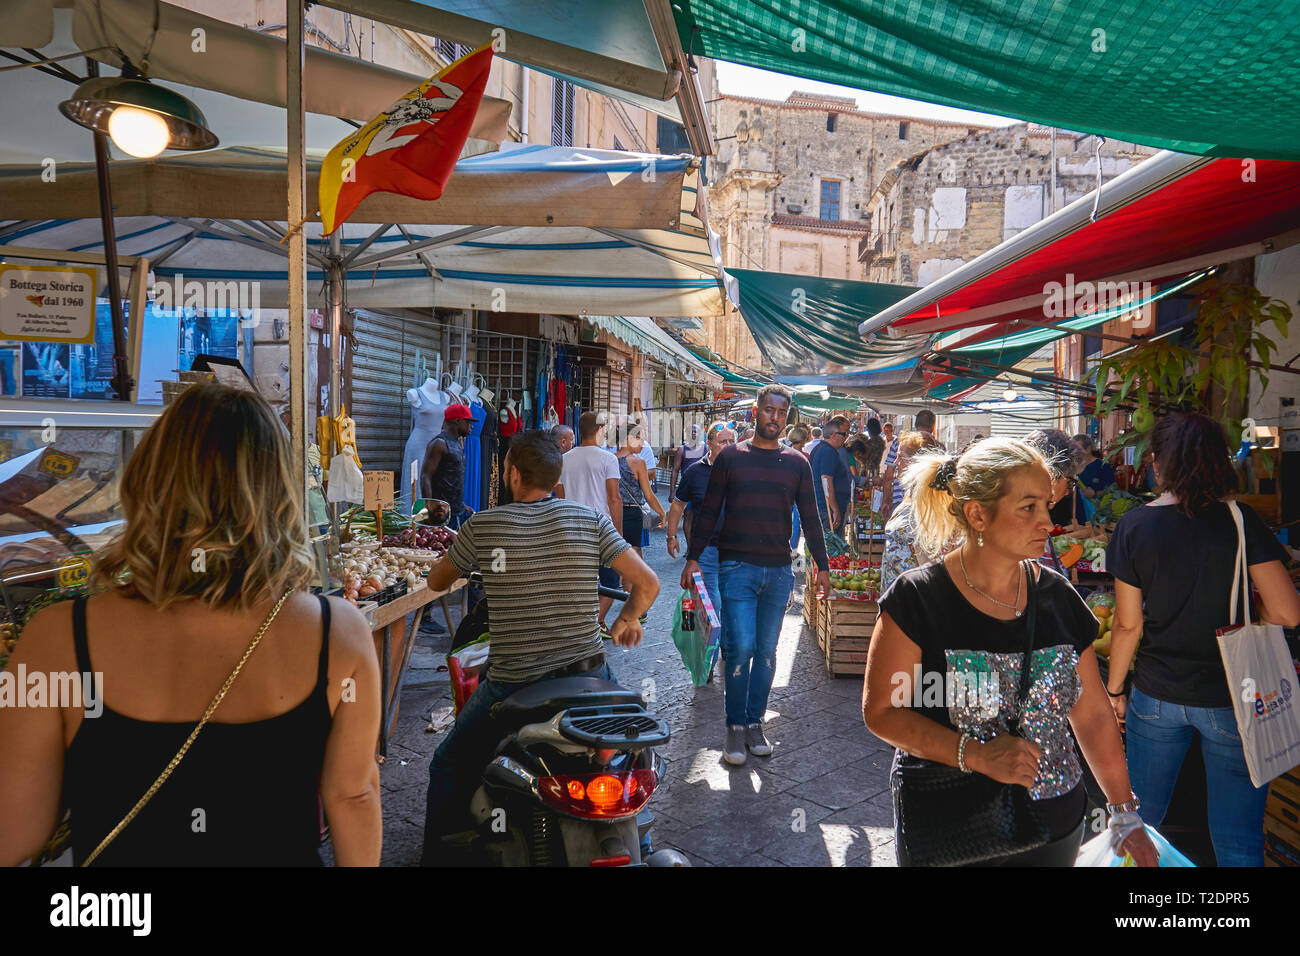 Palermo, Italy - September. 2018. Seafood and vegetable stalls in the Ballarò Market, the oldest food market in Palermo. - Stock Image